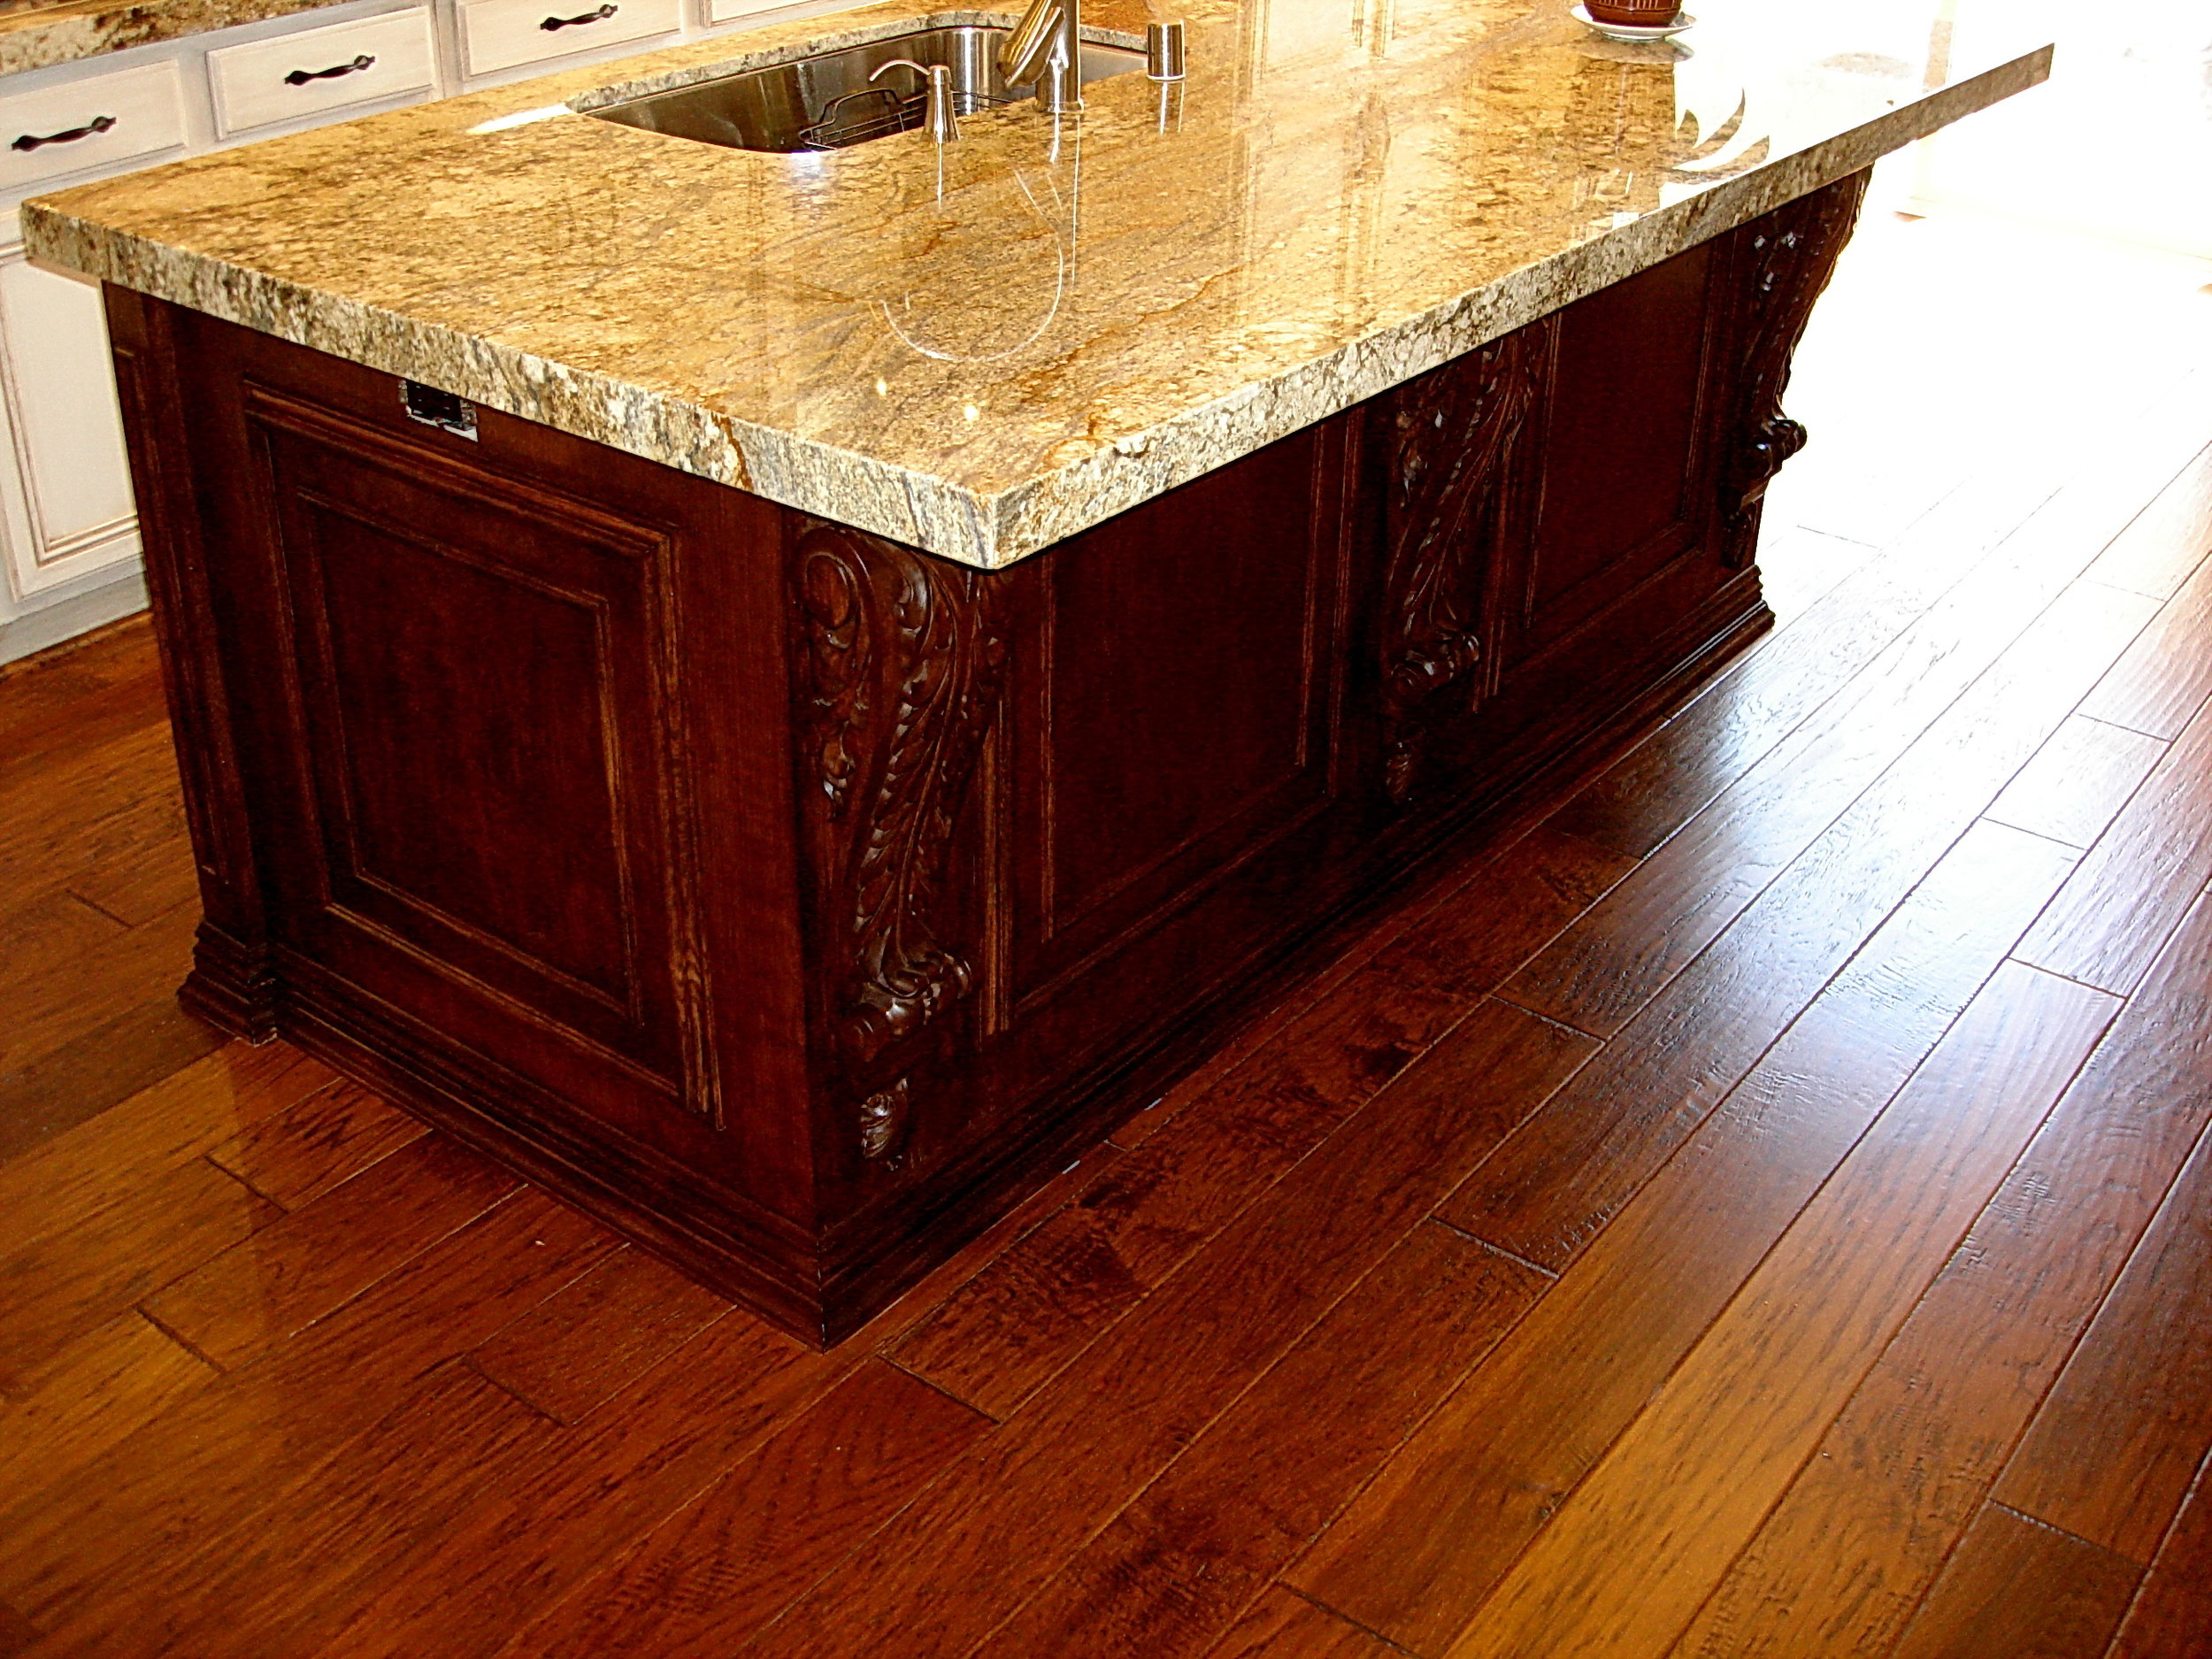 Tudor_Kitchen_Island2.jpg